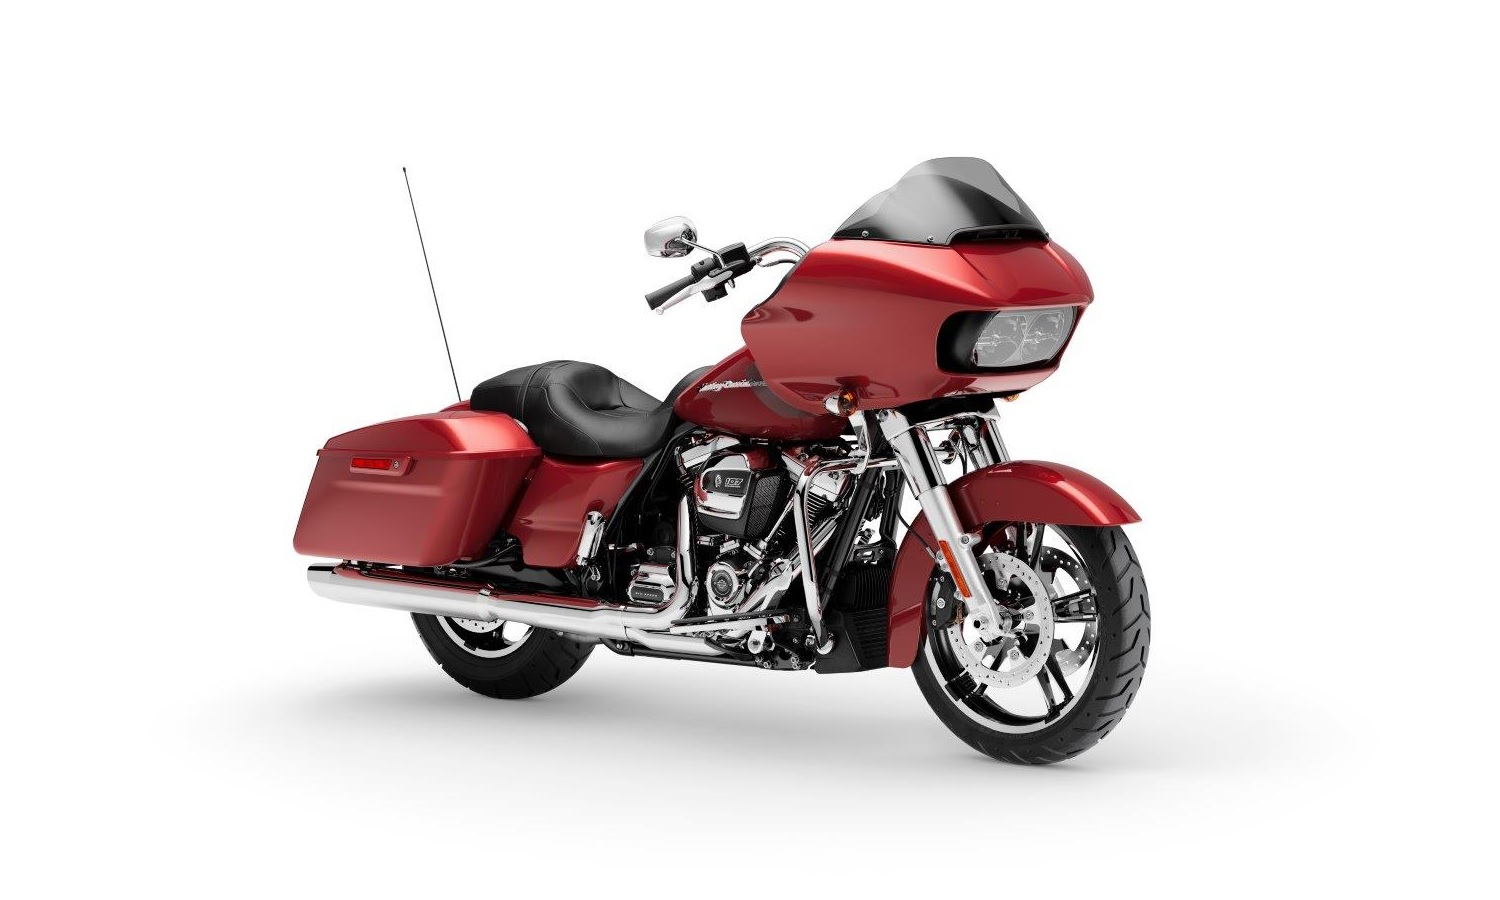 2020 Harley-Davidson Road Glide Studio Shot Side View